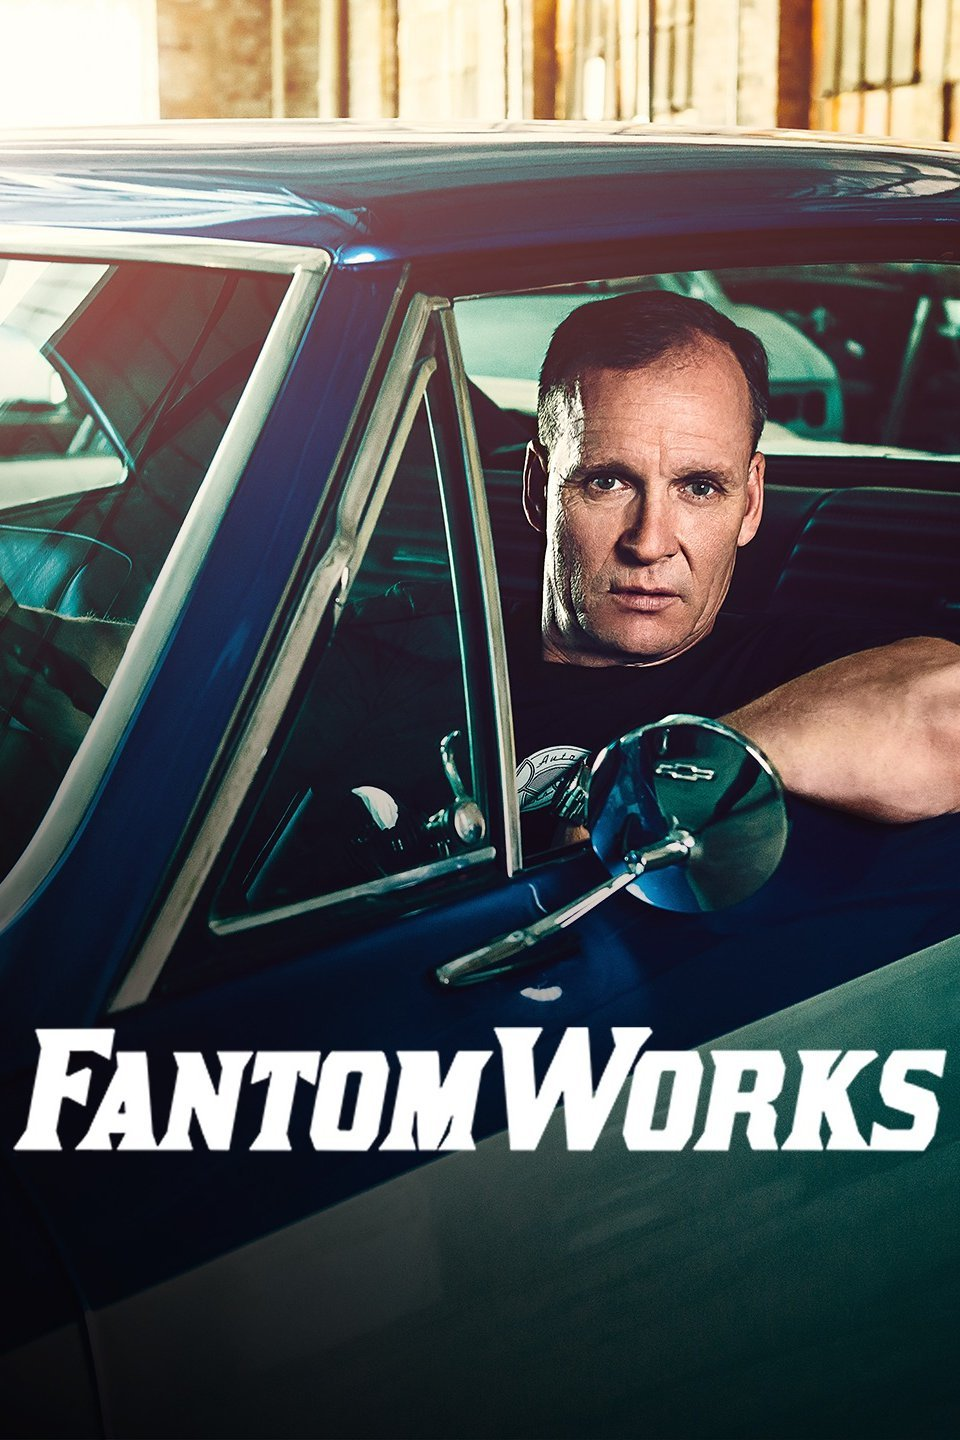 Fantomworks Cancelled After 9th Season By Motortrend Velocity Renewcanceltv